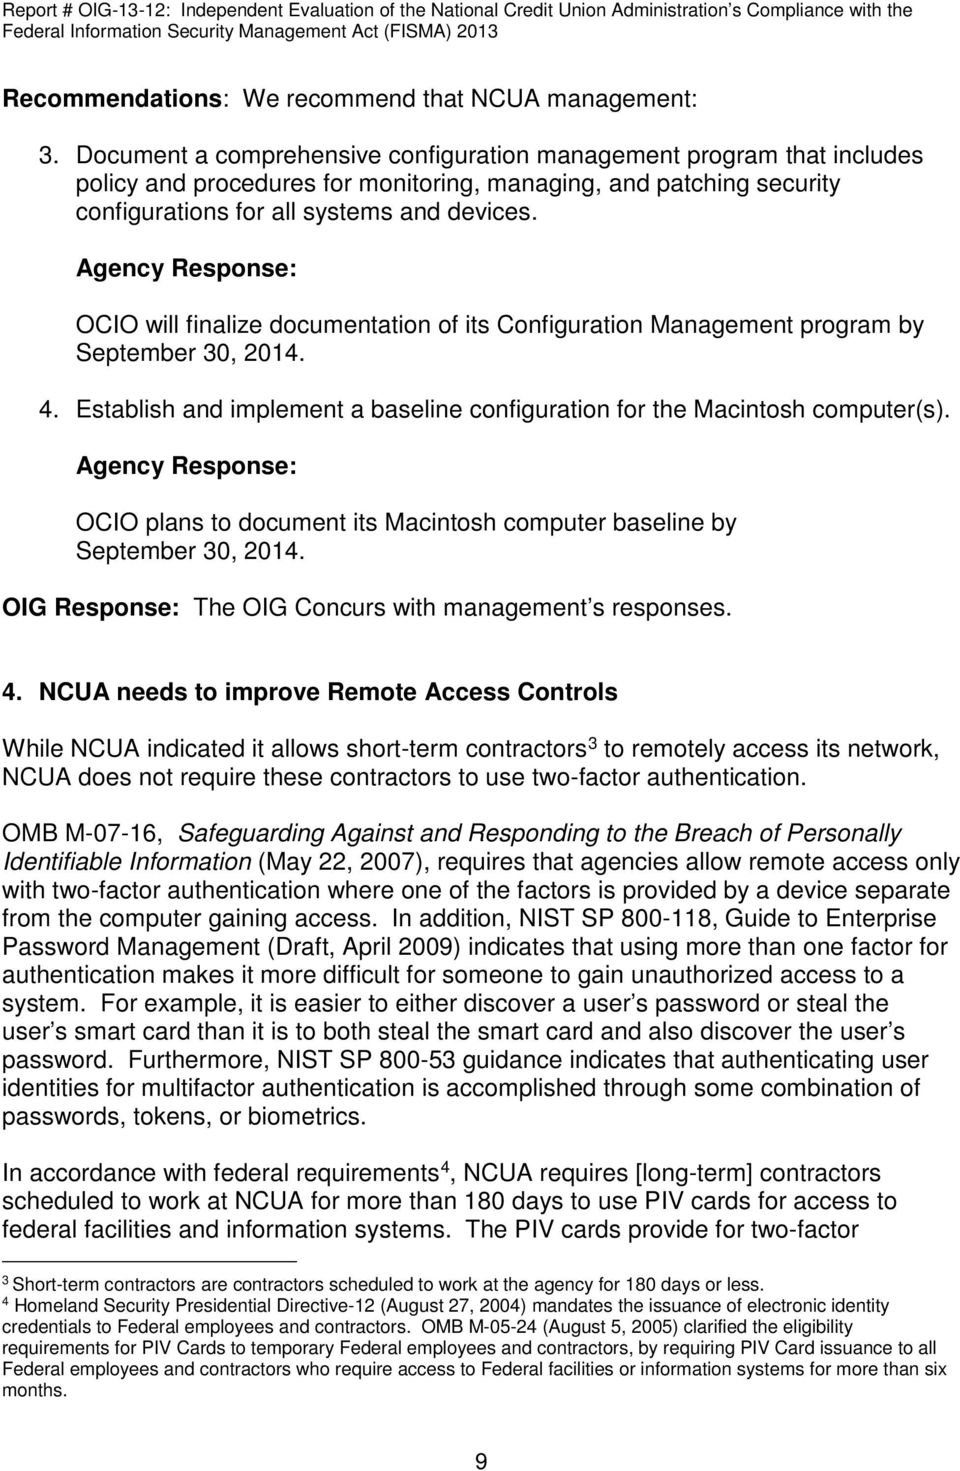 Agency Response: OCIO will finalize documentation of its Configuration Management program by September 30, 2014. 4. Establish and implement a baseline configuration for the Macintosh computer(s).